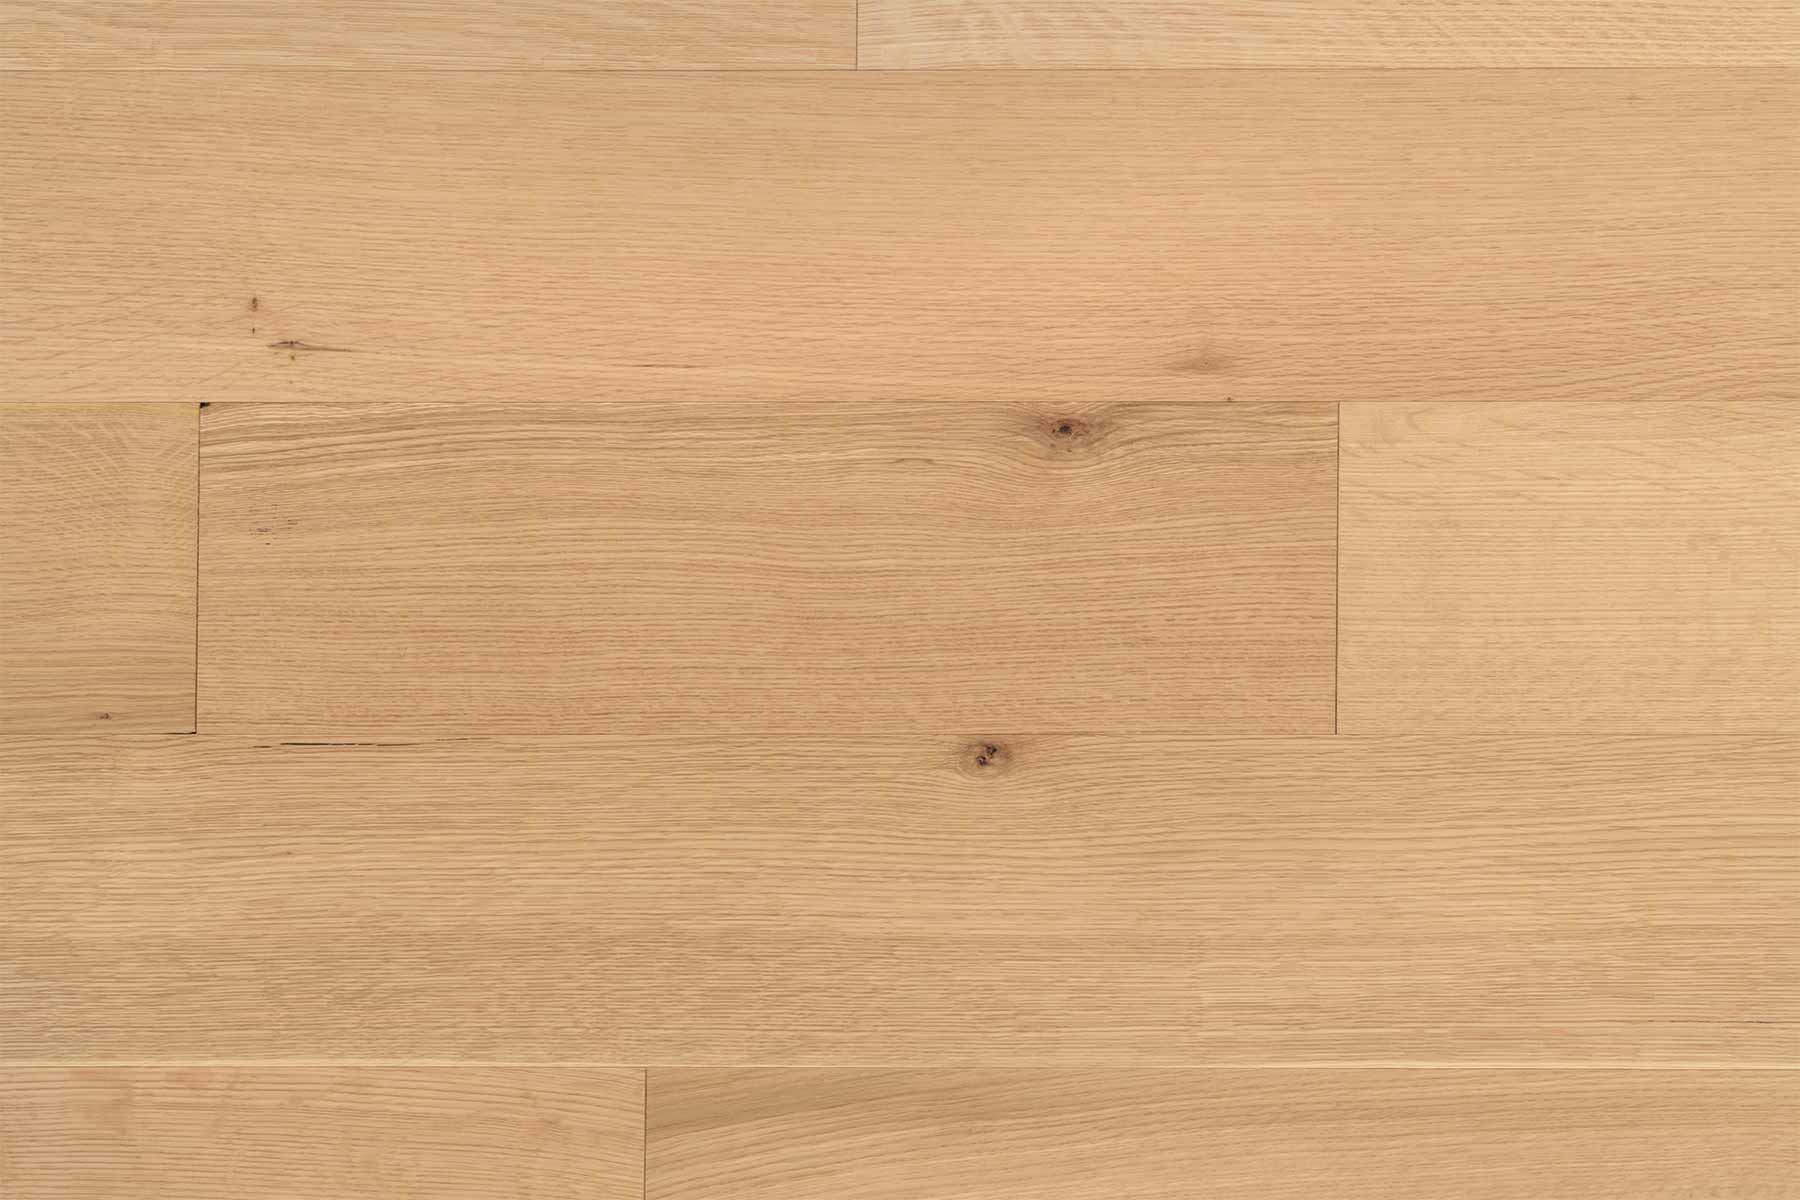 bruce engineered hardwood click lock flooring of 28 new handscraped engineered hardwood photos flooring design ideas intended for gallery of 28 handscraped engineered hardwood